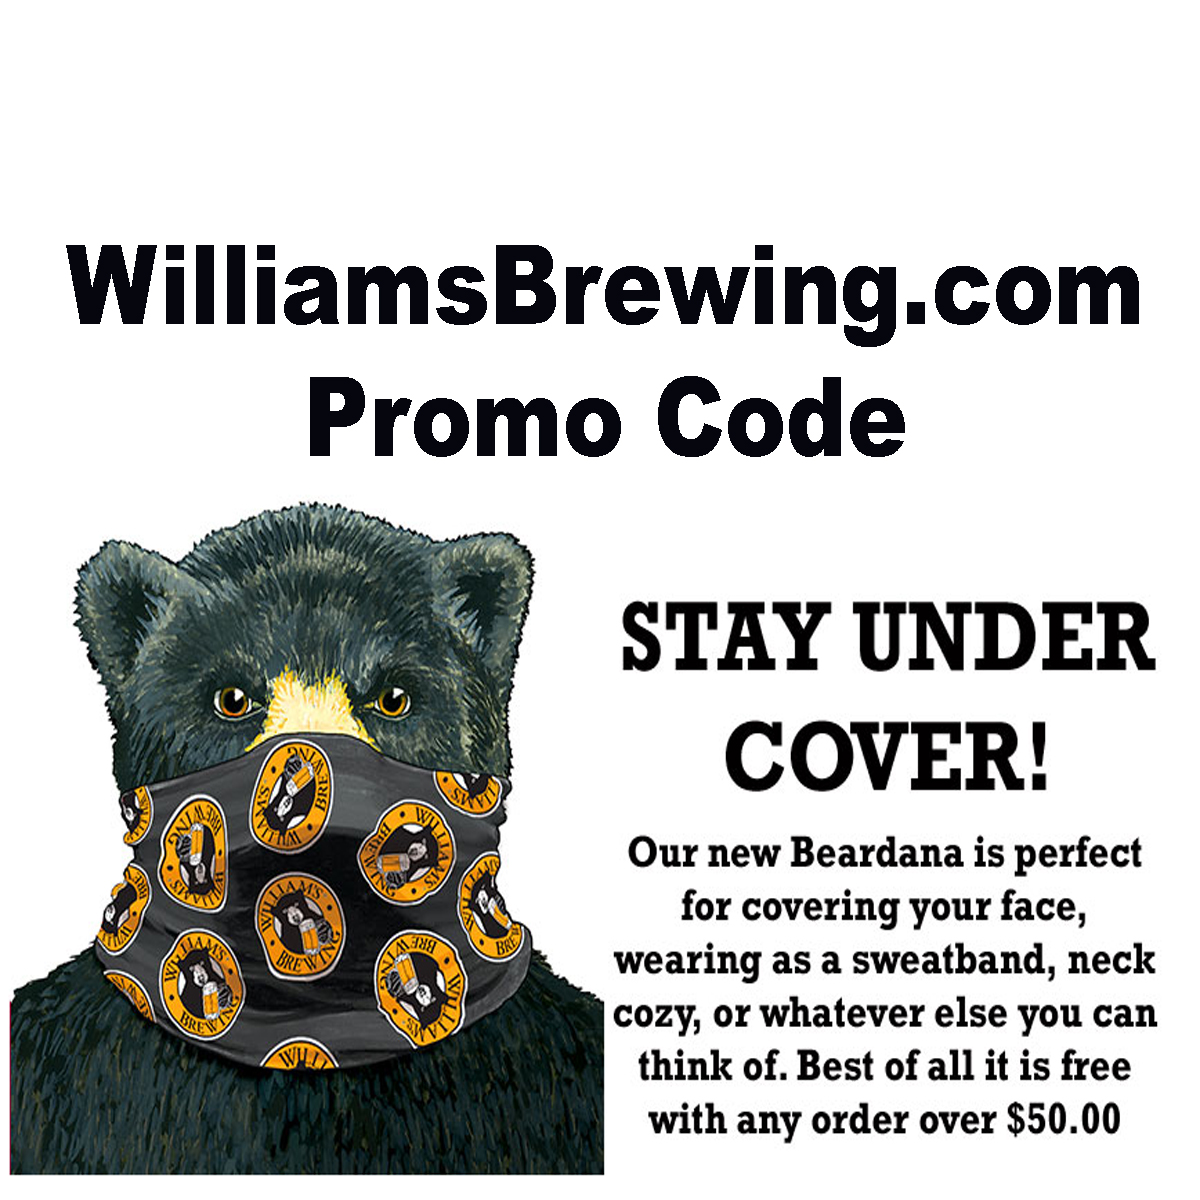 Spend $50 at Williams Brewing and get a FREE BEARDADA with this WilliamsBrewing.com Coupon Code for August 2020 Coupon Code